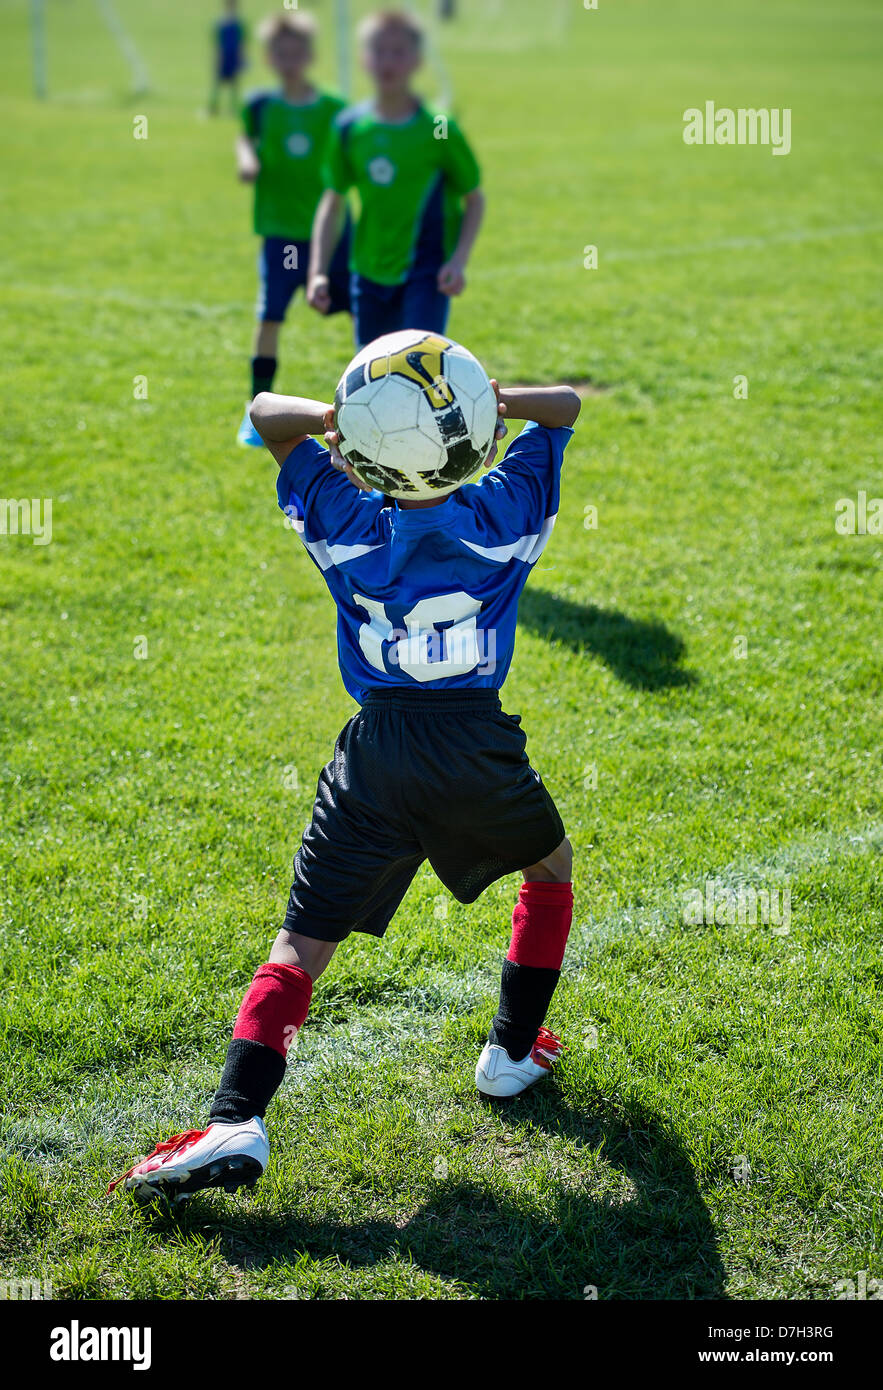 Throwin during youth soccer match. - Stock Image